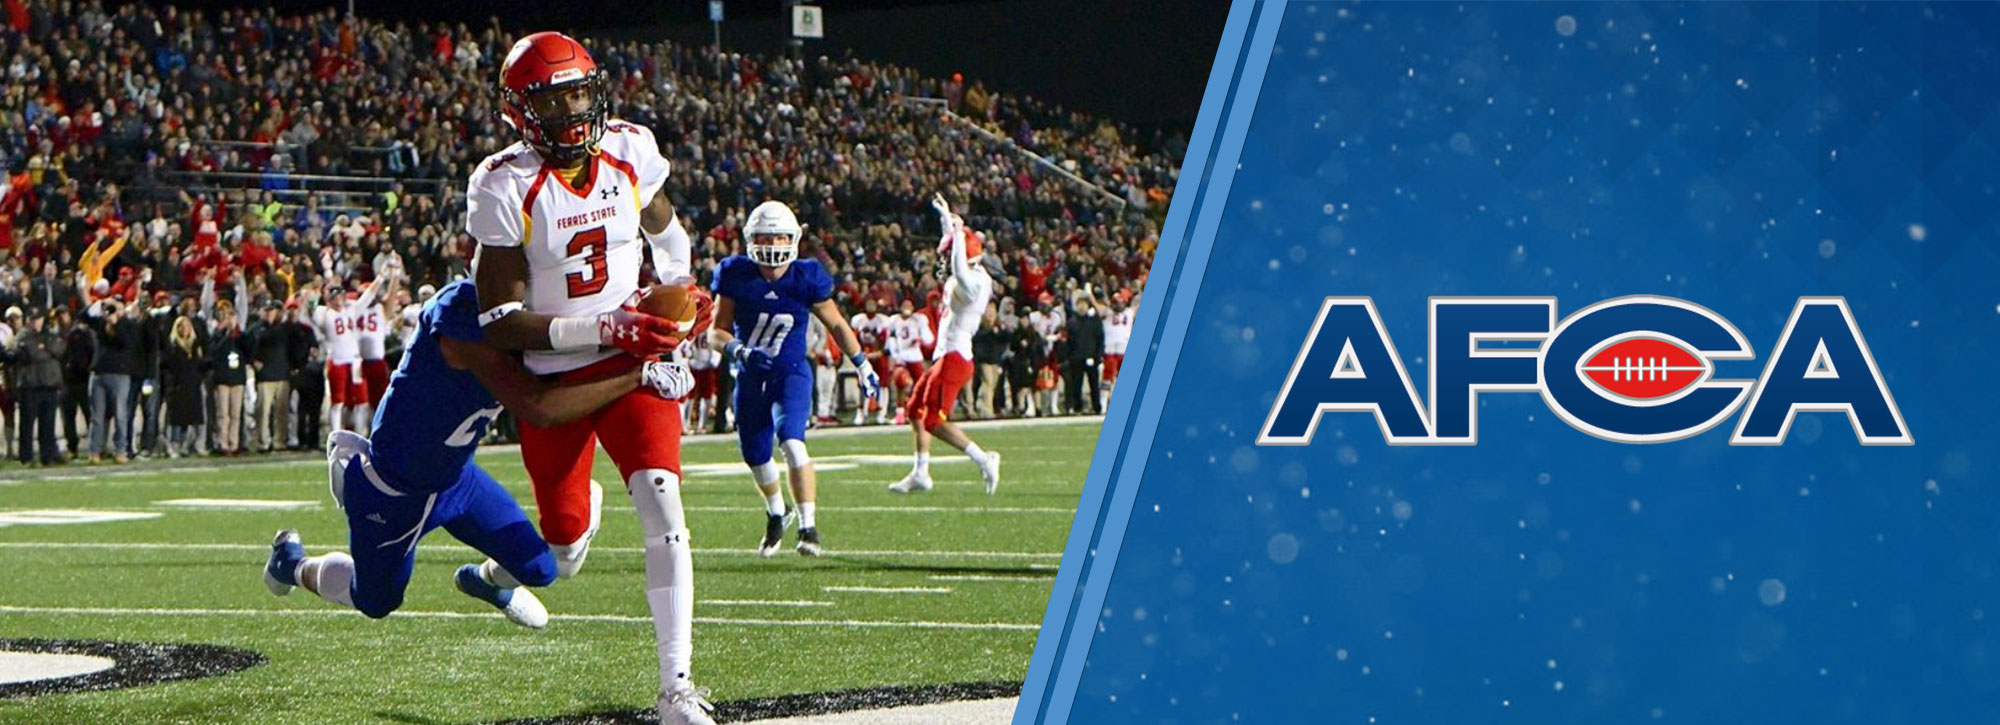 Ferris State Jumps to No. 2 in Latest AFCA Football Poll; GVSU Eighth